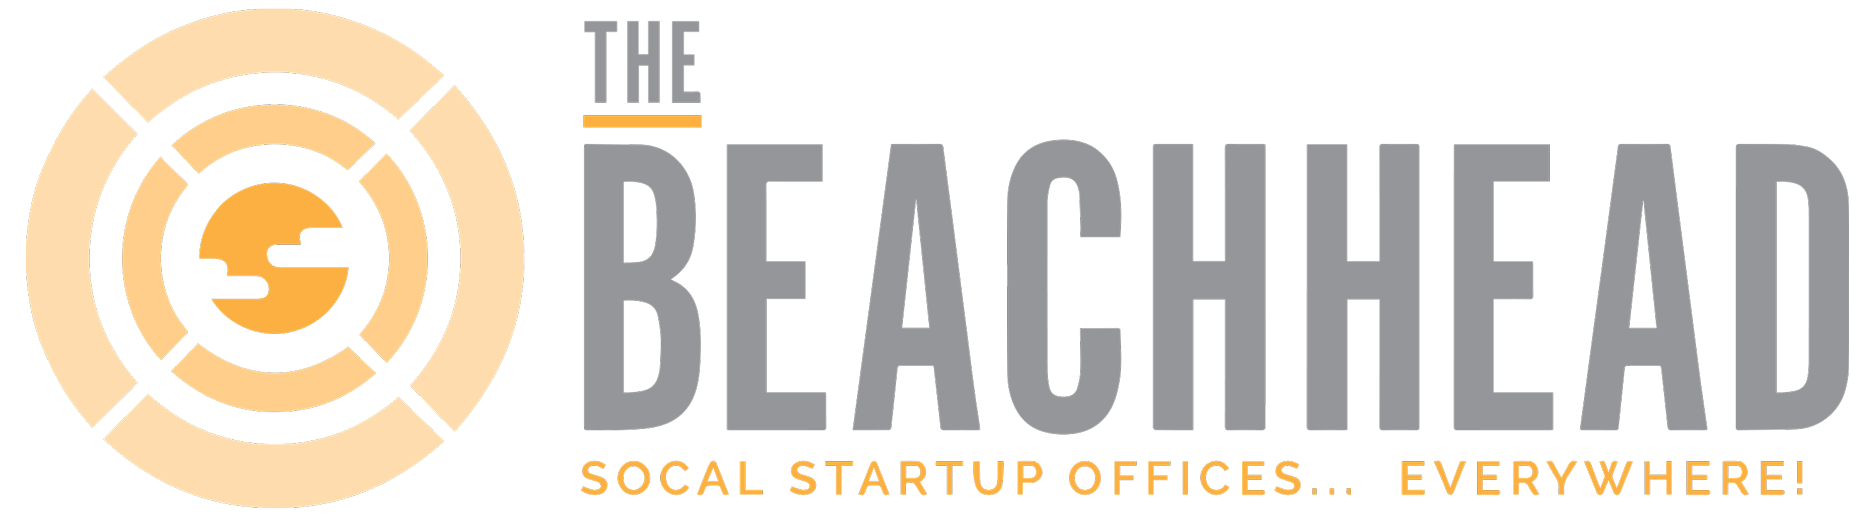 The BeachHead, by San Diego Venture Group